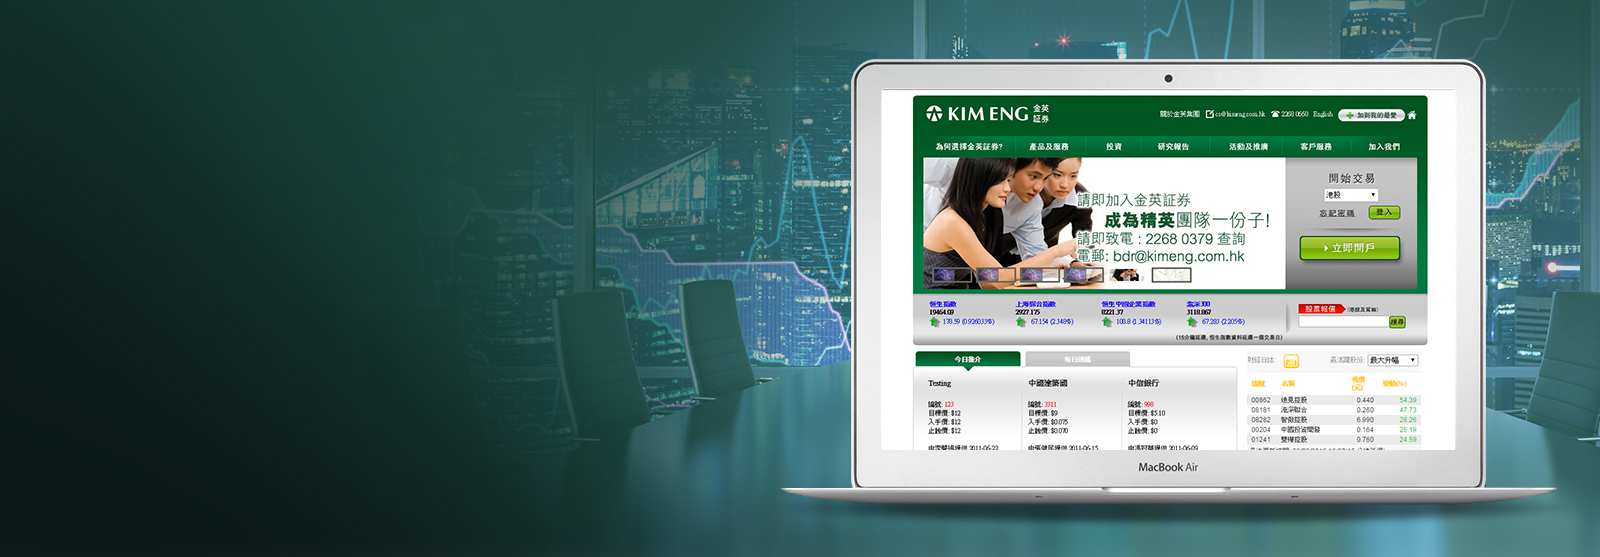 Kim Eng Securities Kim Eng Website Revamp